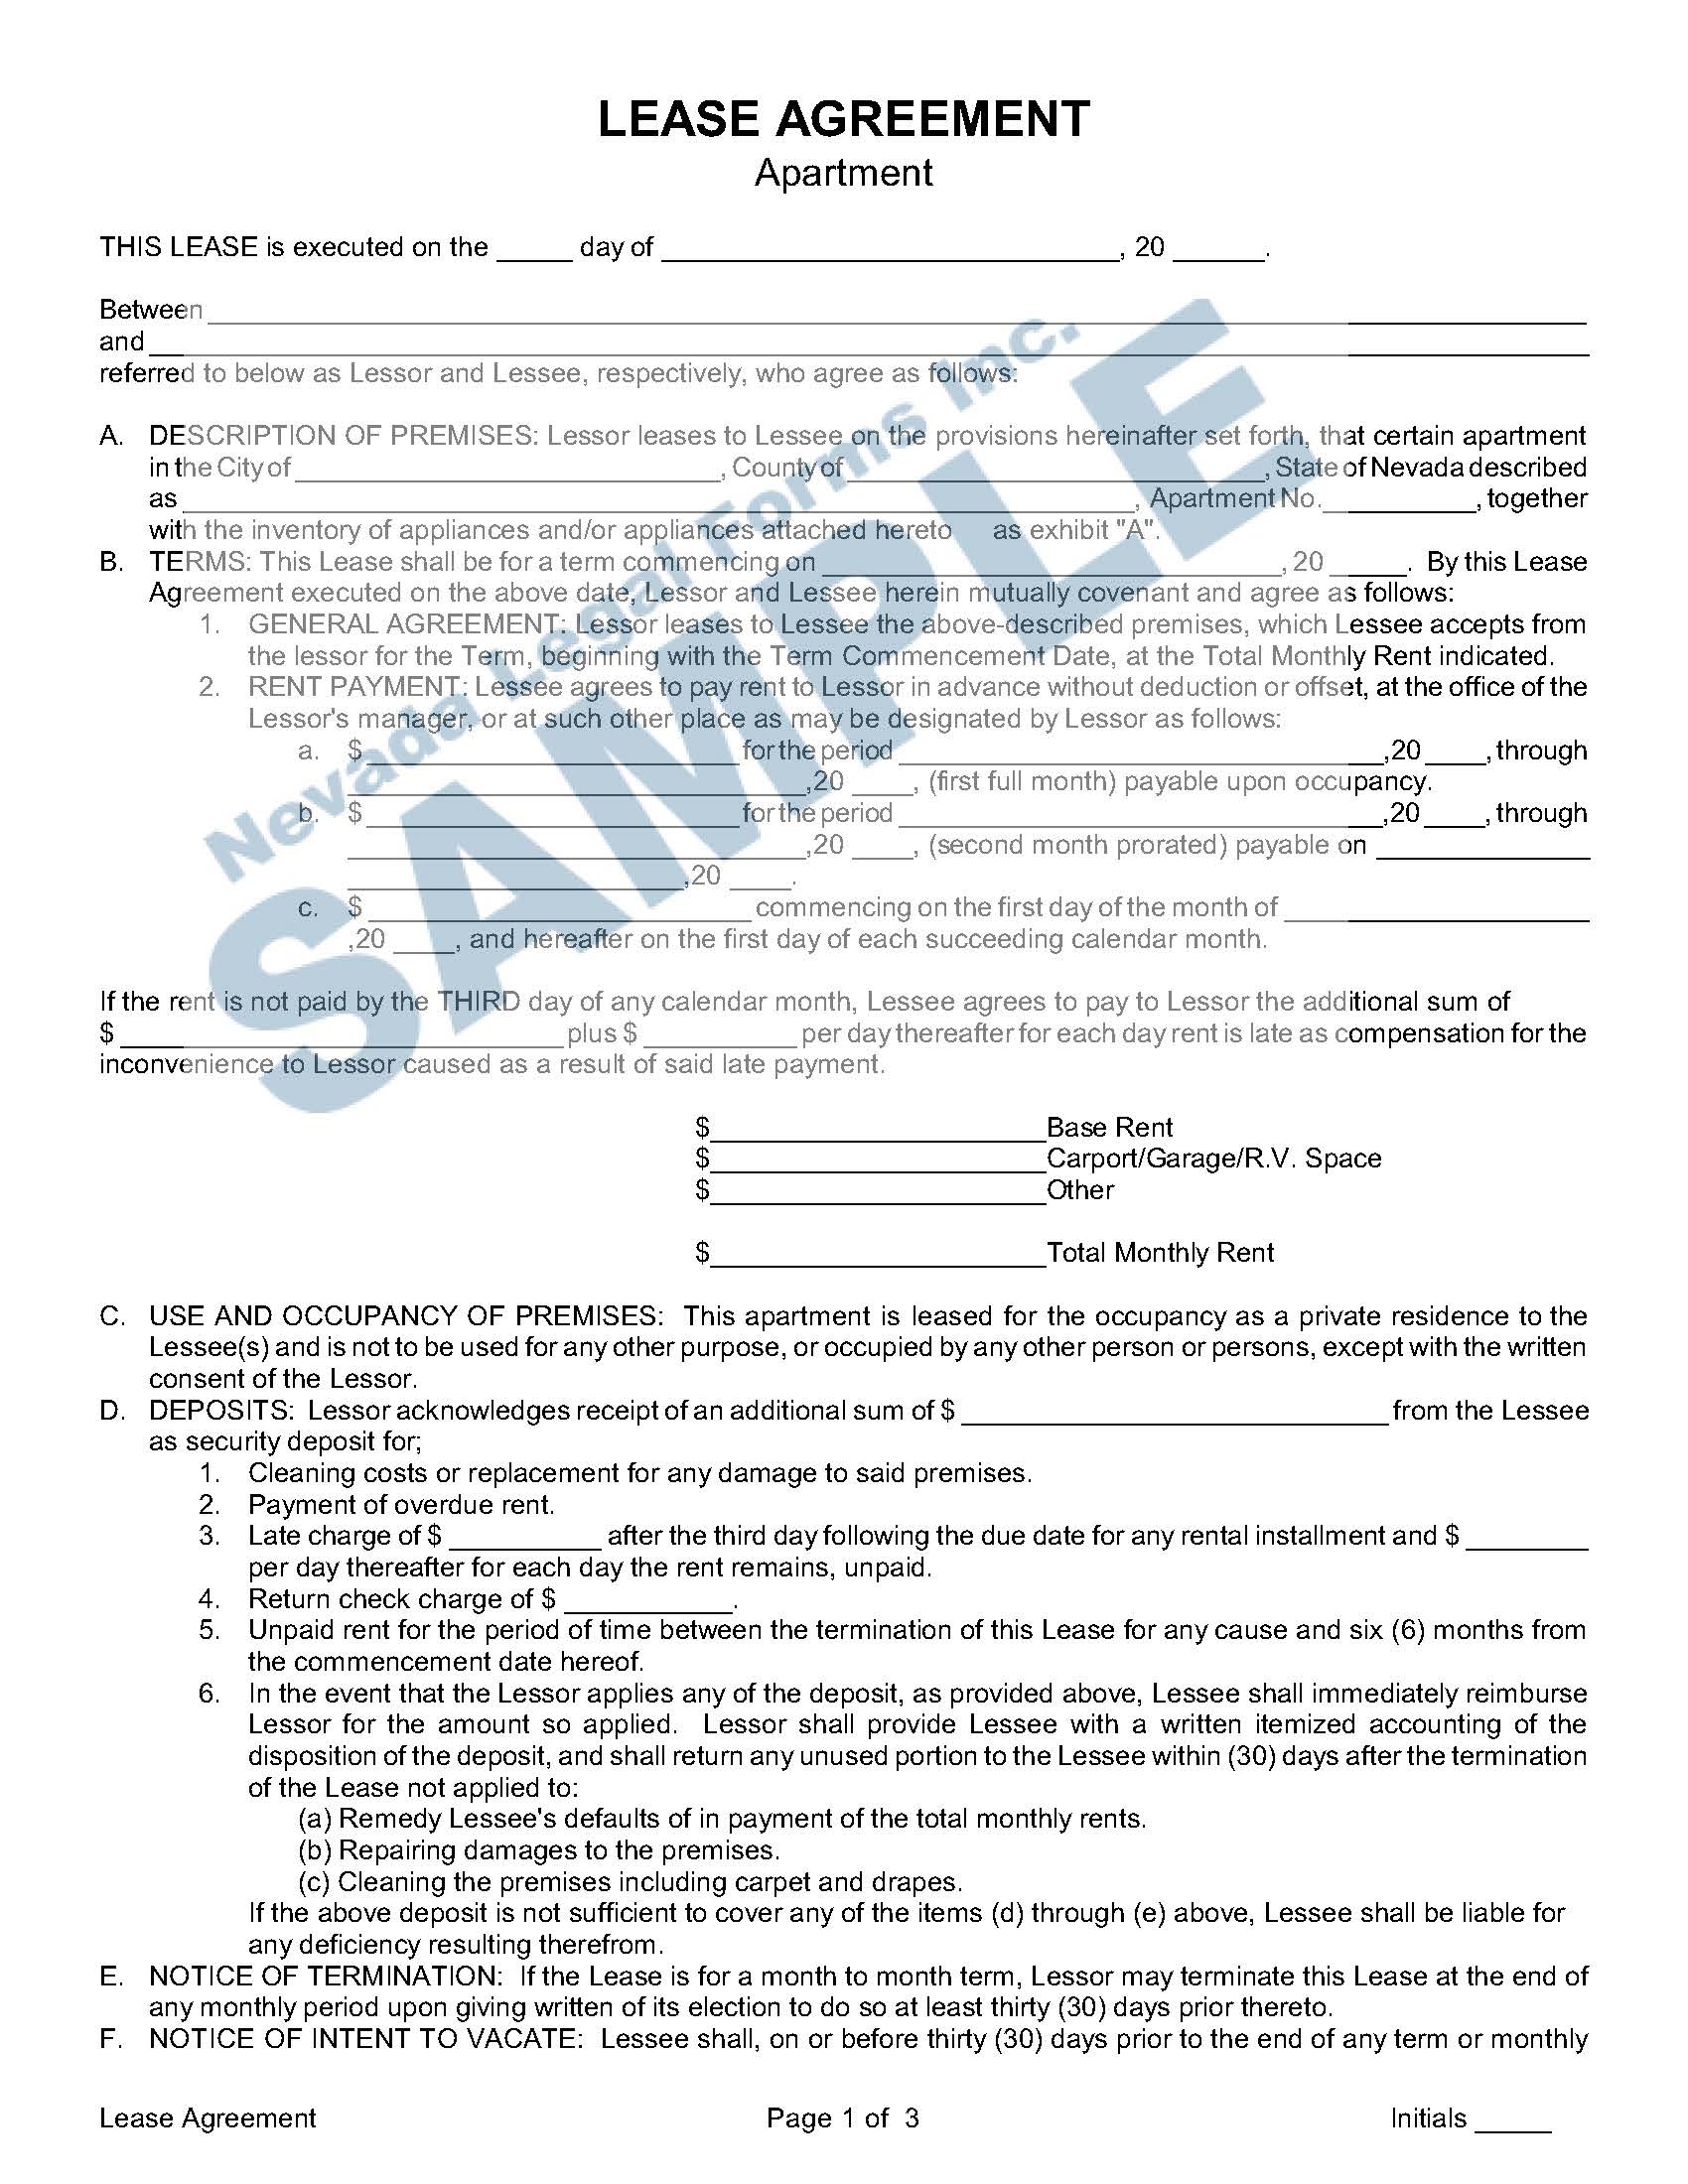 Lease Agreement Apartment